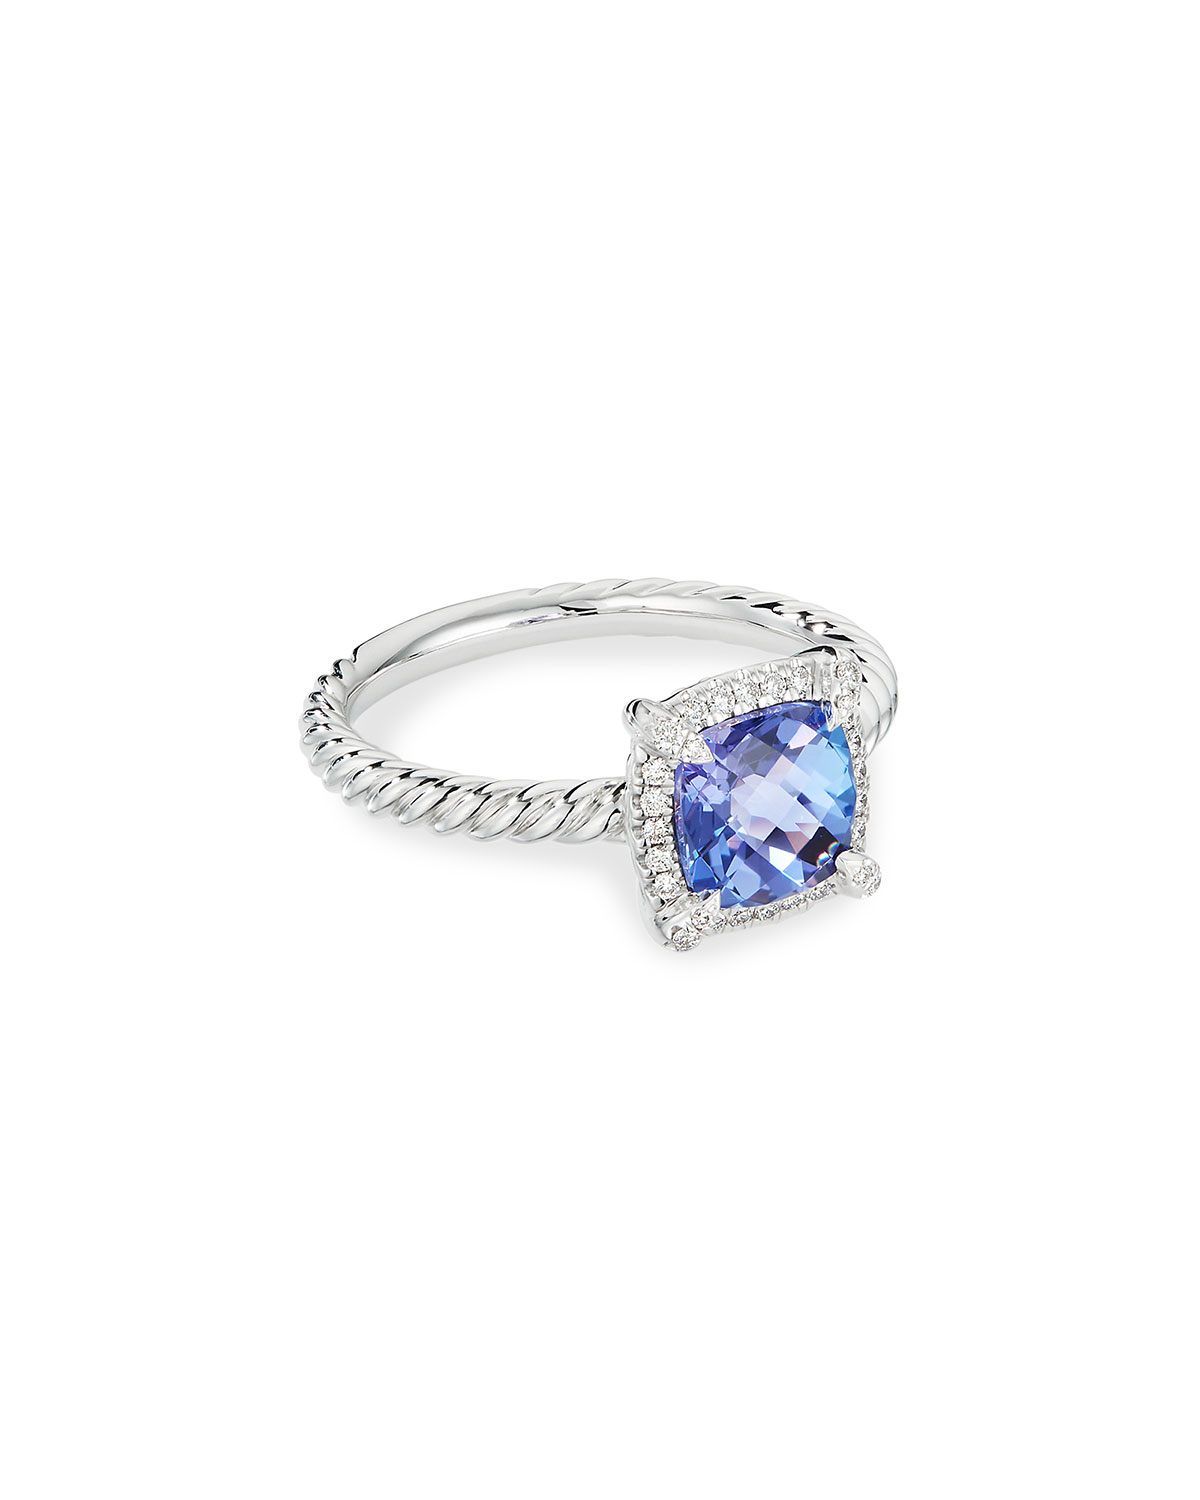 David Yurman Petite Chatelaine Pave Bezel Ring in 18K White Gold with Tanzanite, Size 6